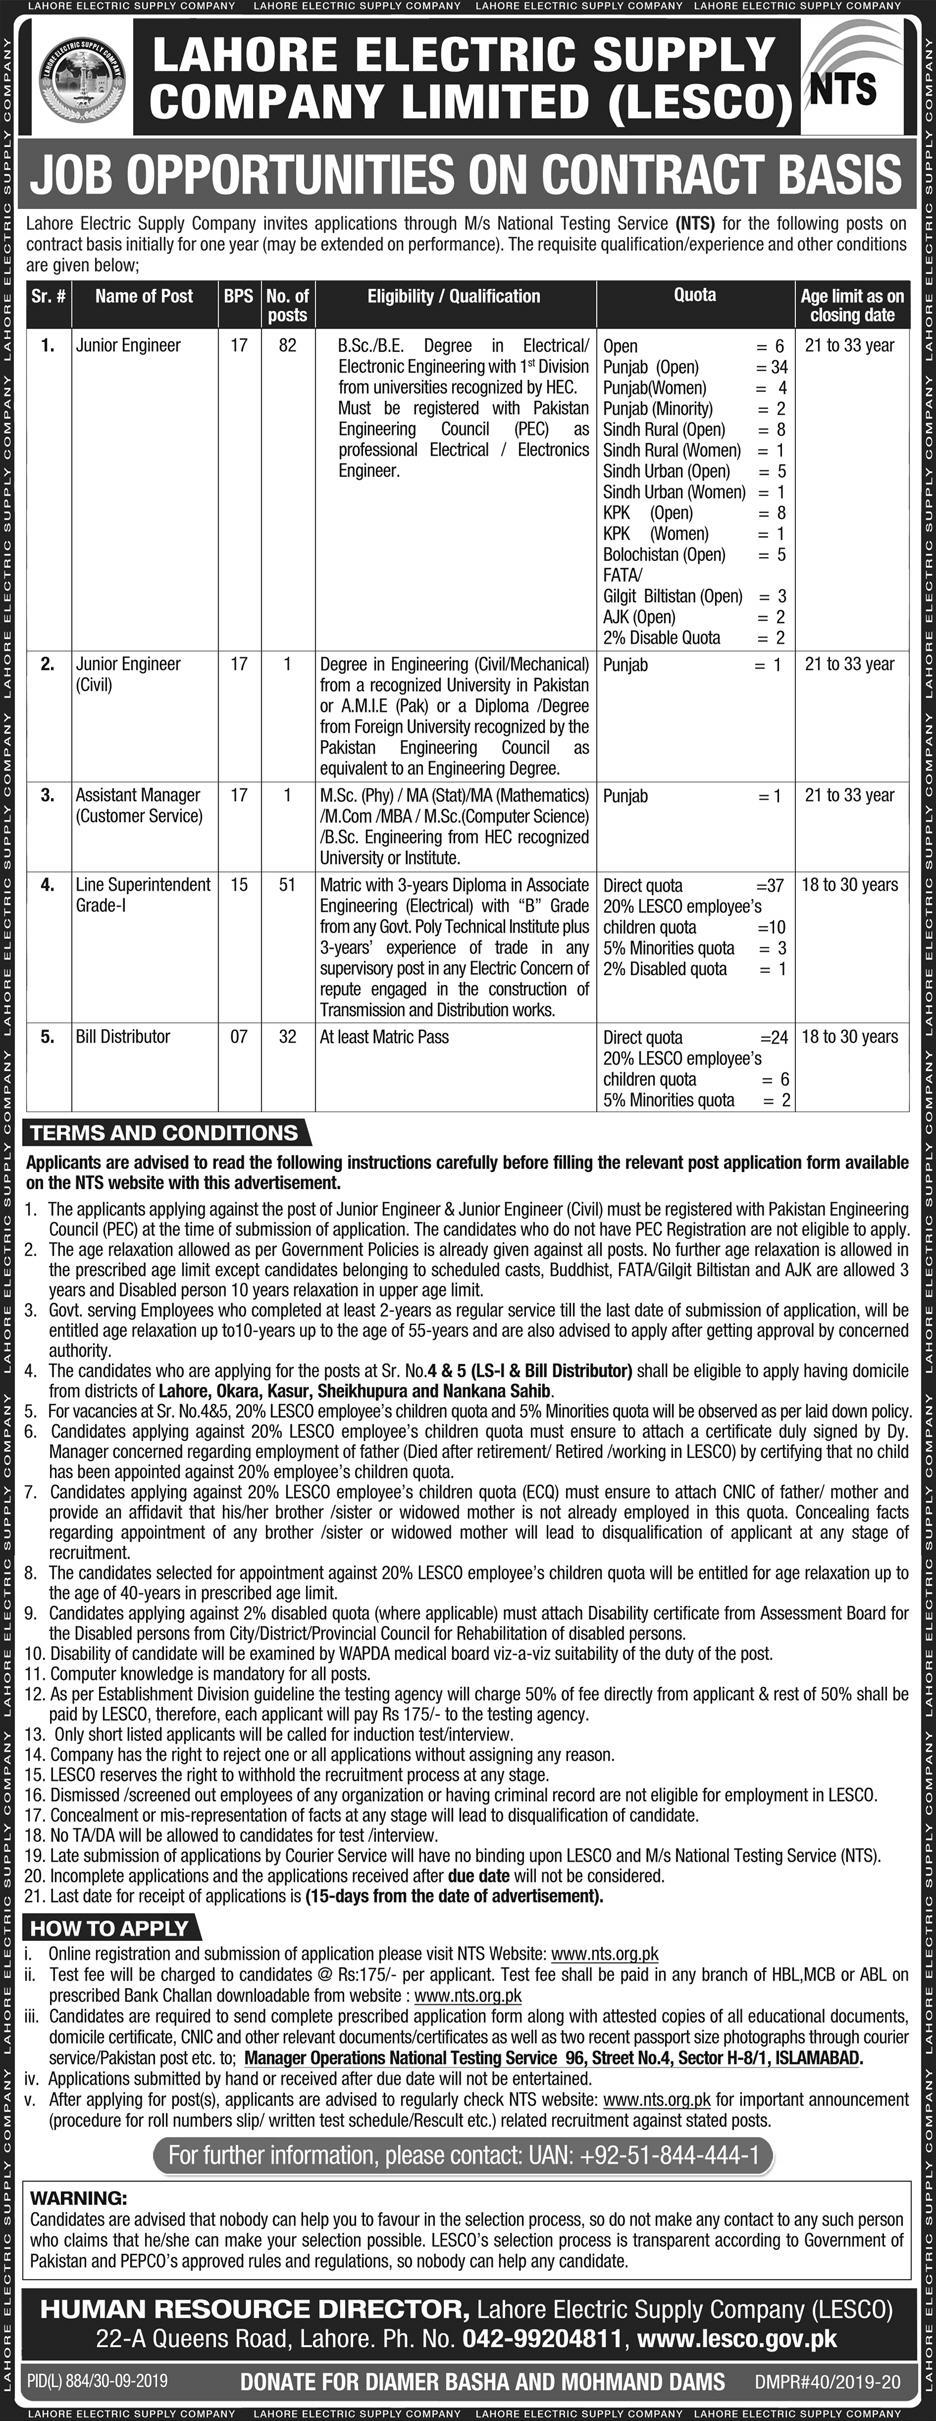 Lahore Electric Supply Company LESCO NTS Jobs 2019 Application Form Roll No Slip